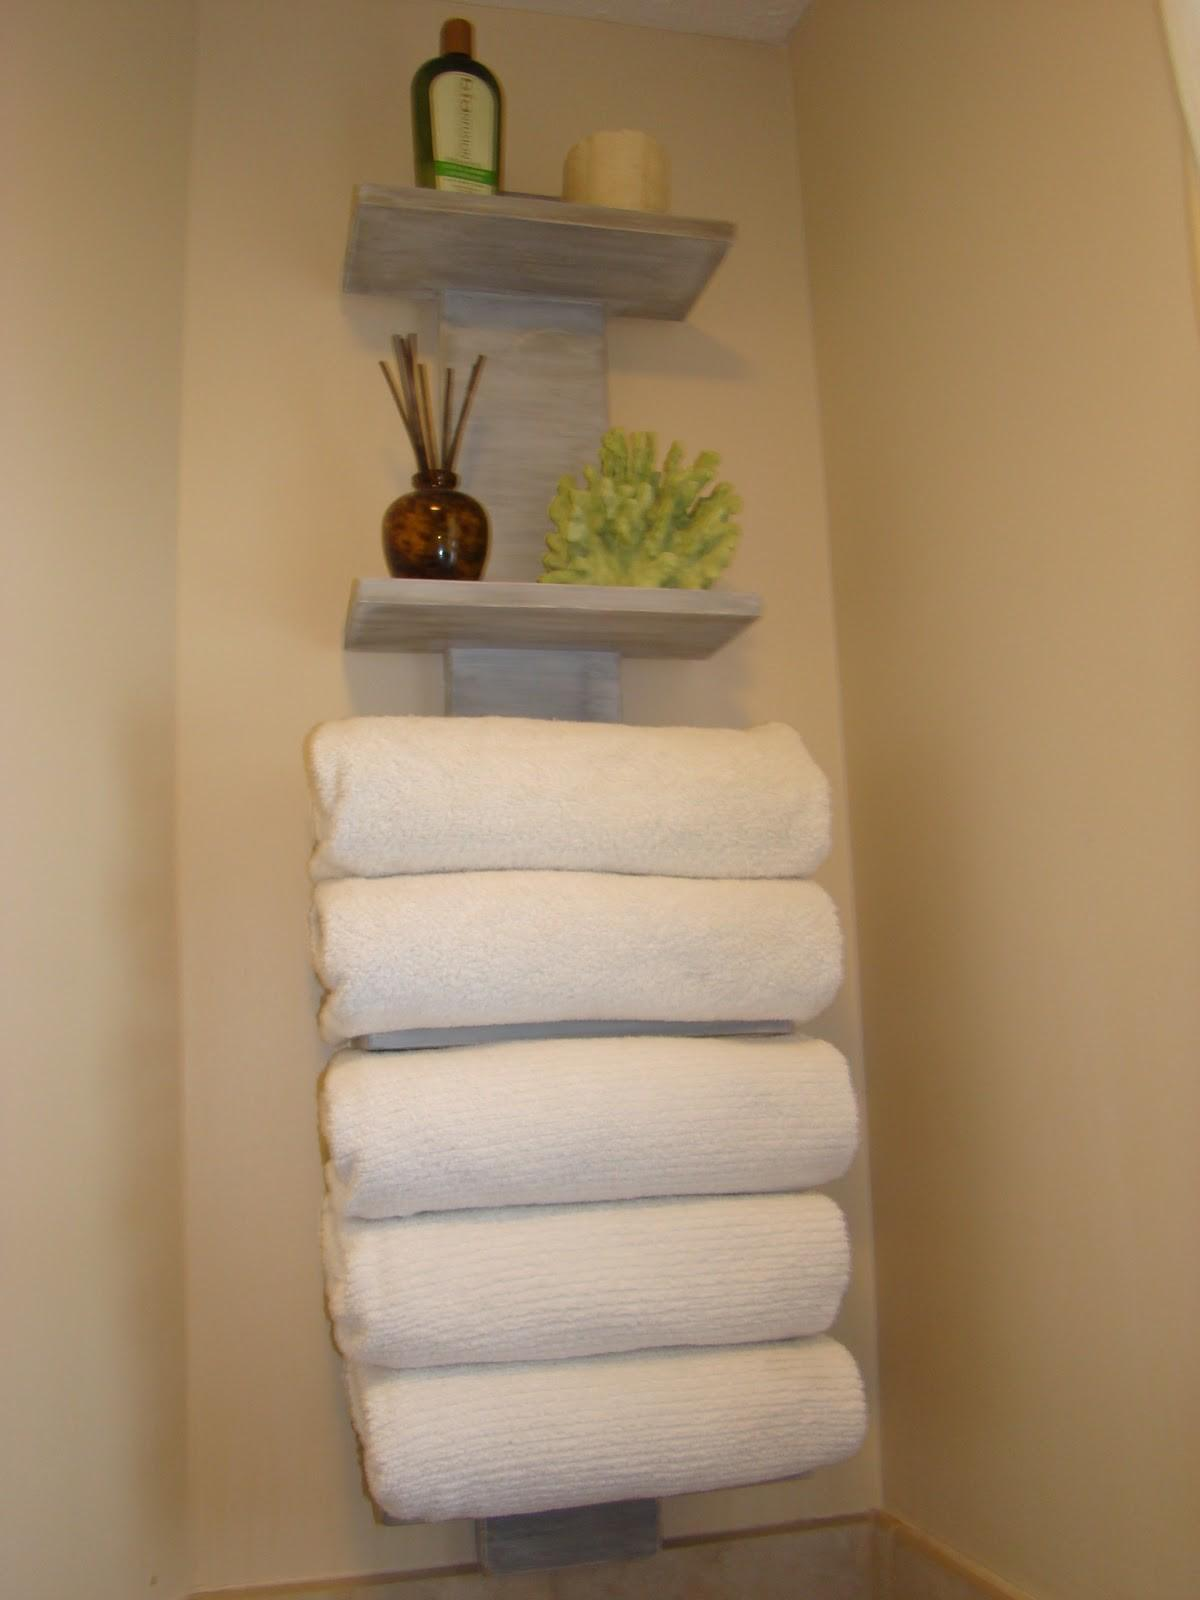 Bath Finally Gets Some Towel Storage